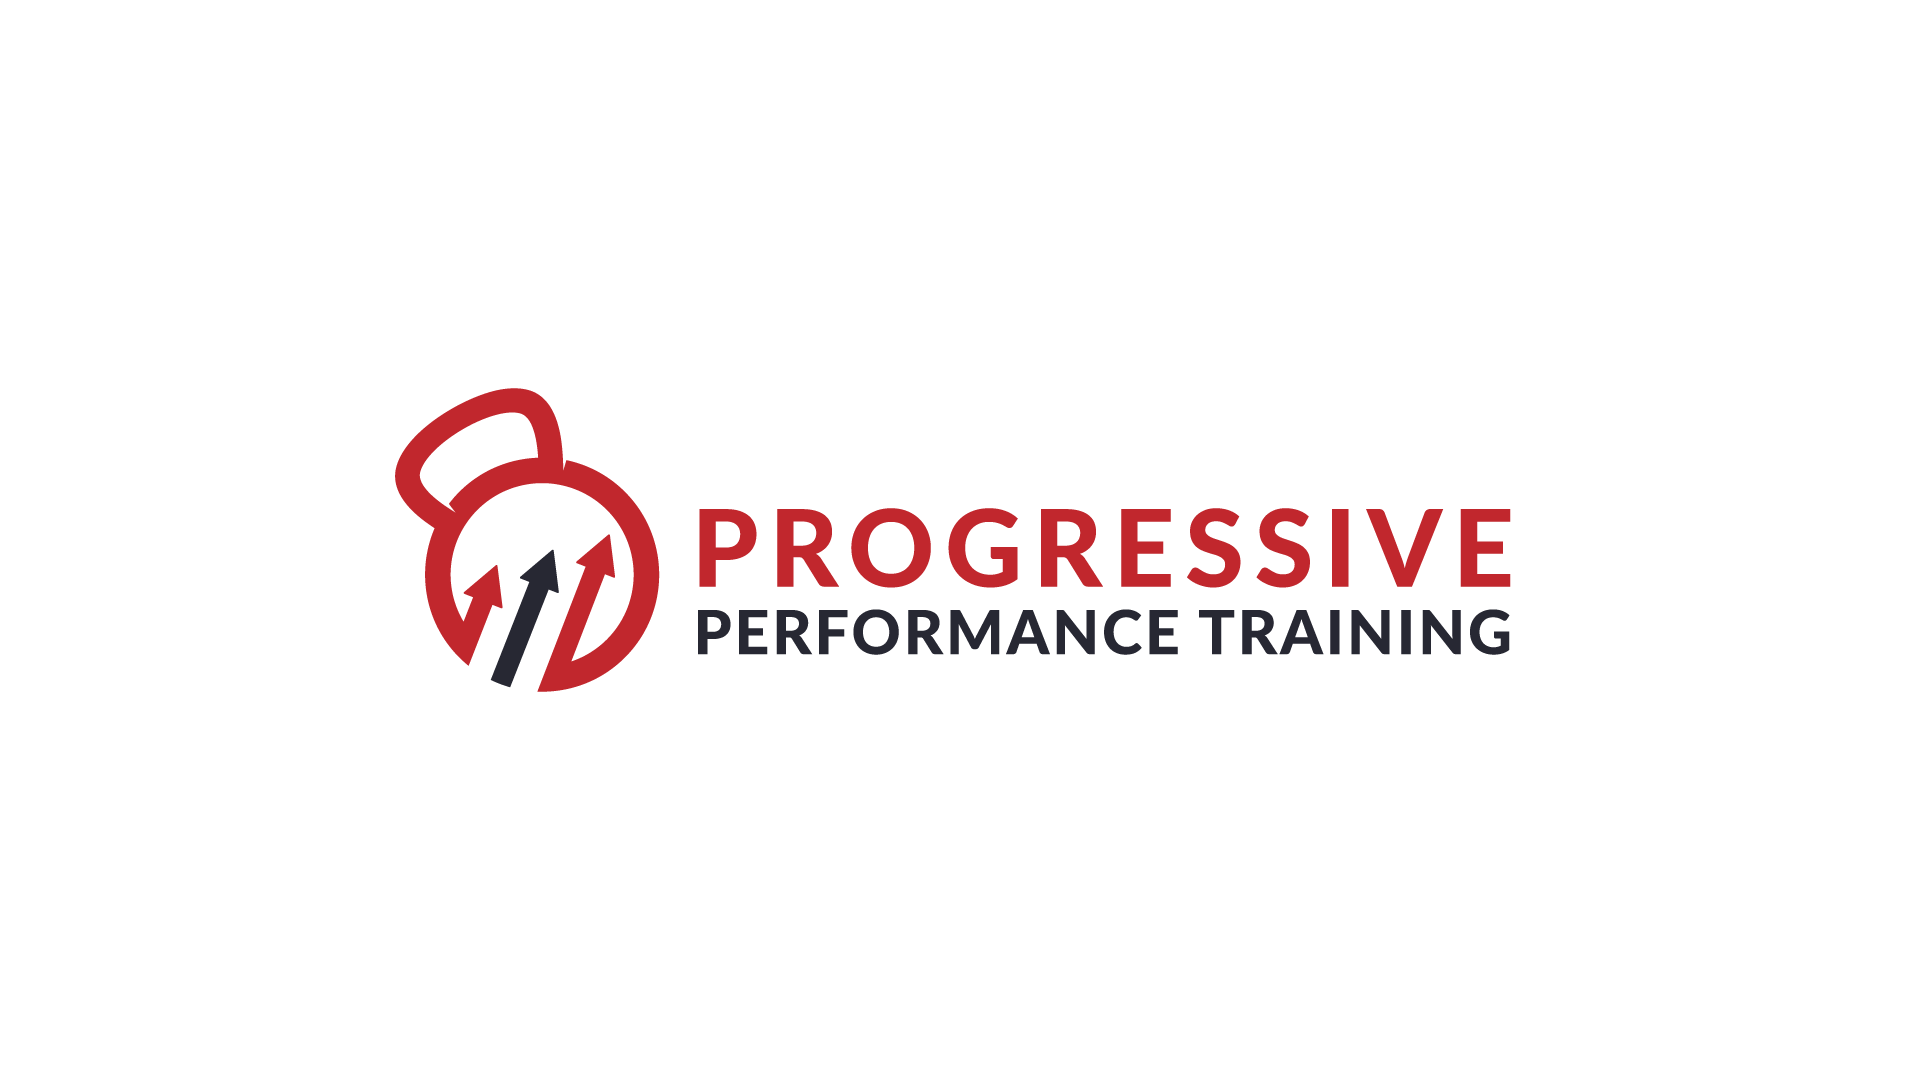 Progressive Performance